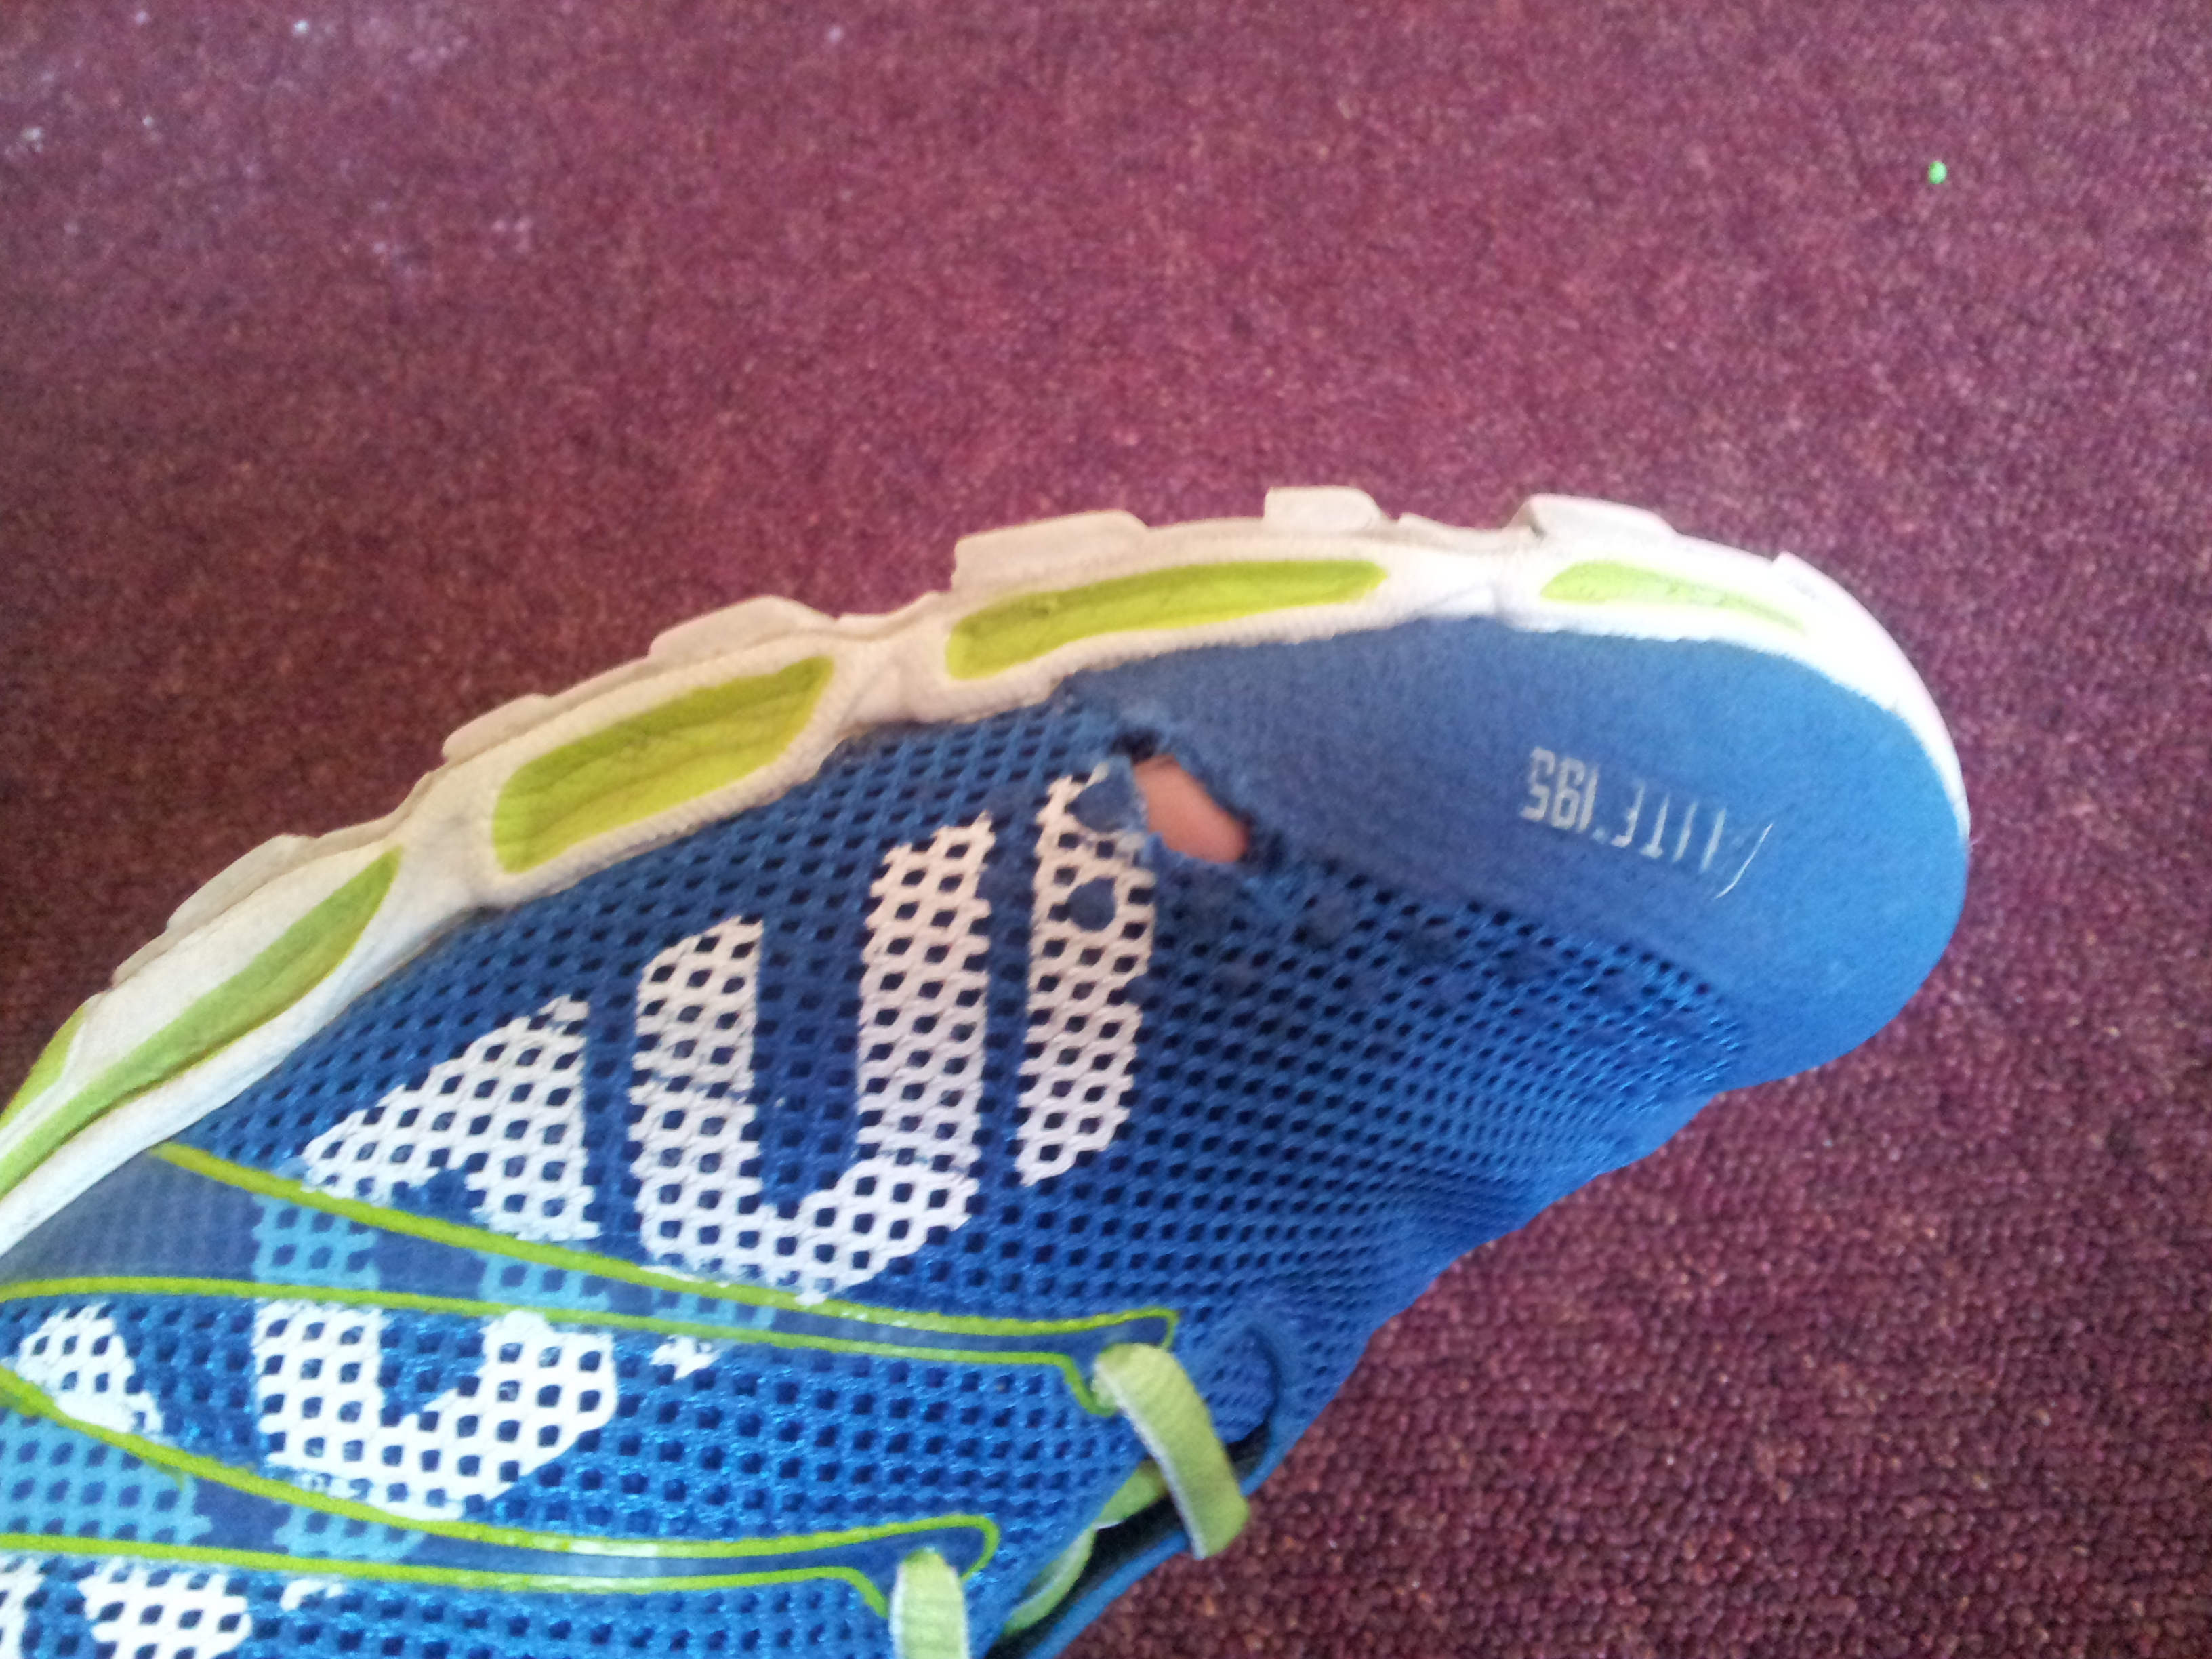 The Running Shoe Review